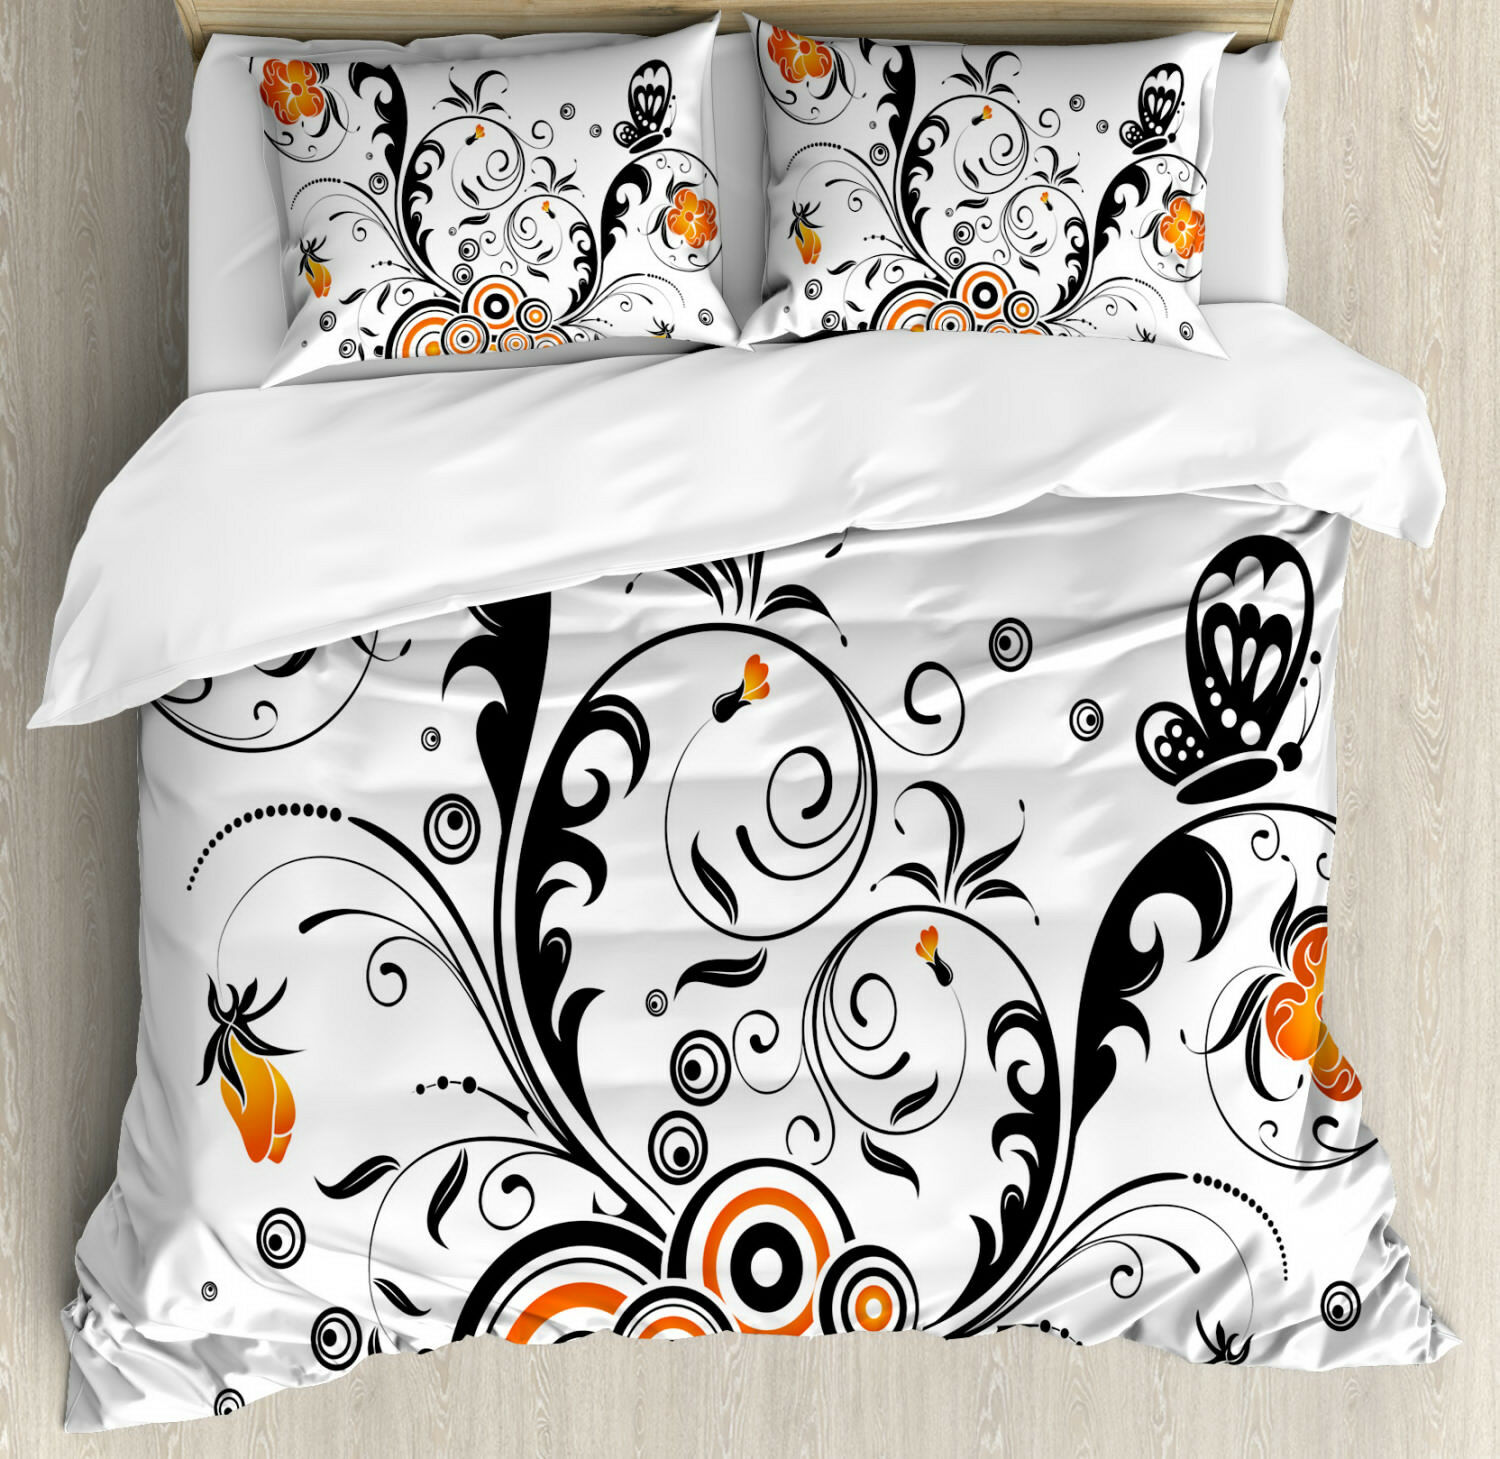 Garden Duvet Cover Set with Pillow Shams Circular Petals Butterfly Print